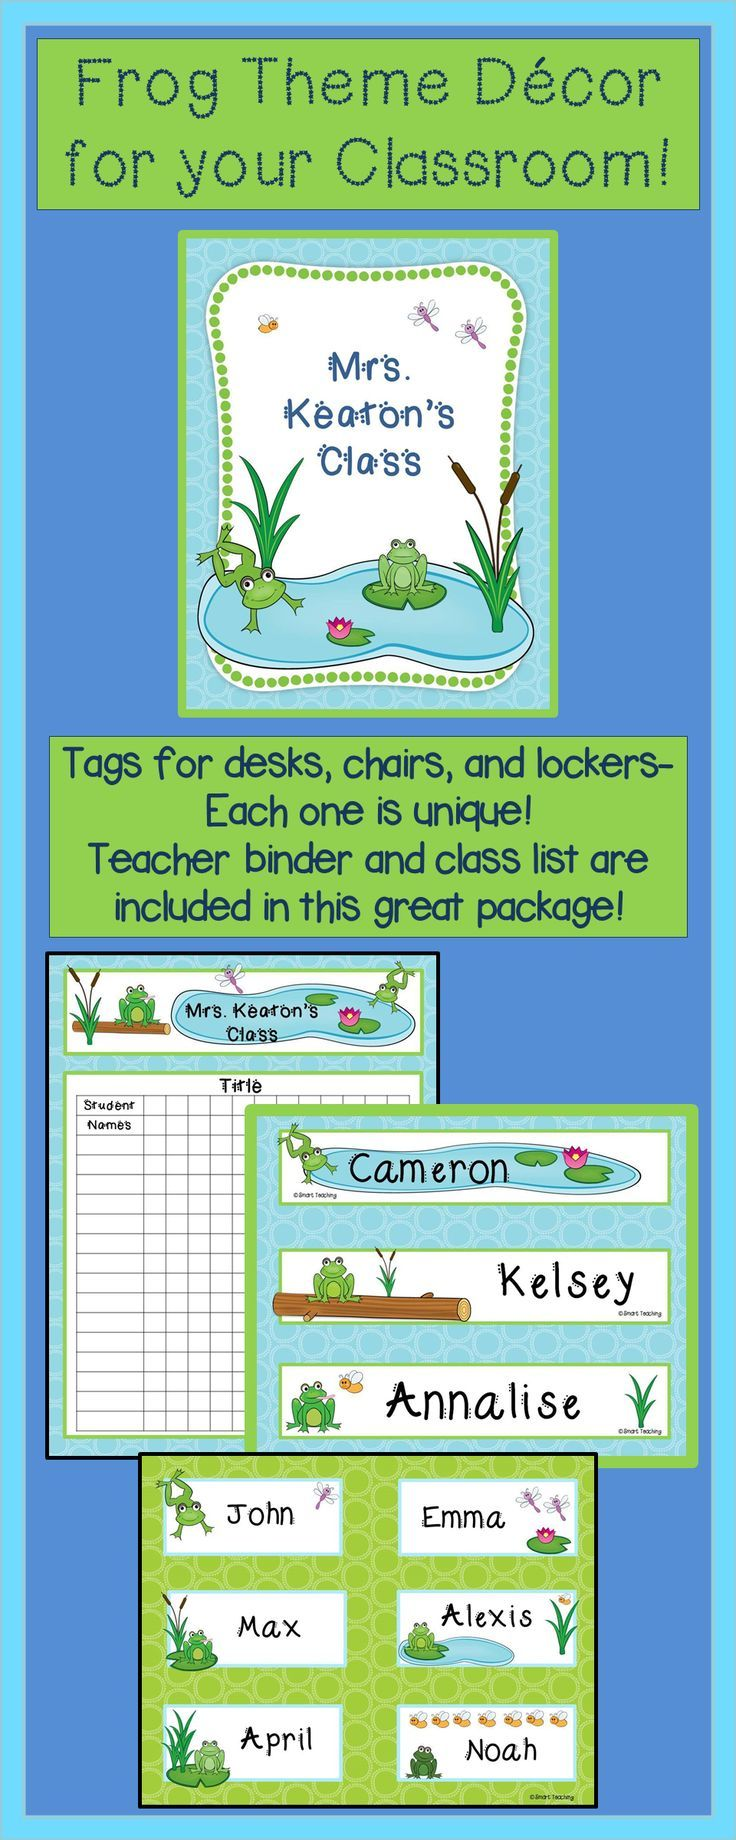 This frog theme package will make your room look great! Each name tag and desk tag is unique. It includes a binder cover, class list sheet and a welcome banner. There is also a Spanish bienvenidos banner. Everything in the package is editable. Your students will love it! $